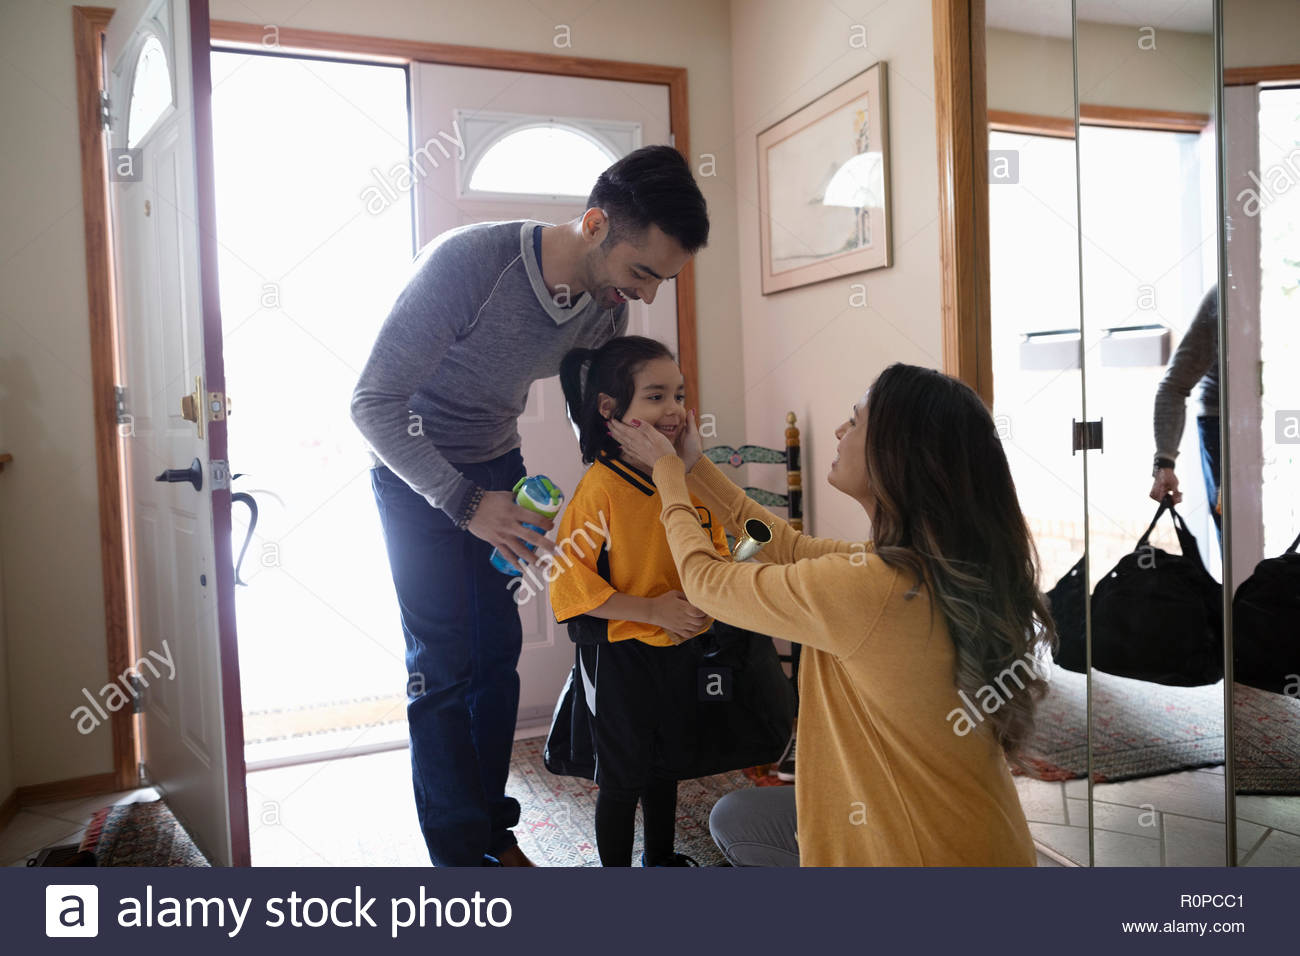 Mother saying goodbye to husband and son in soccer uniform - Stock Image